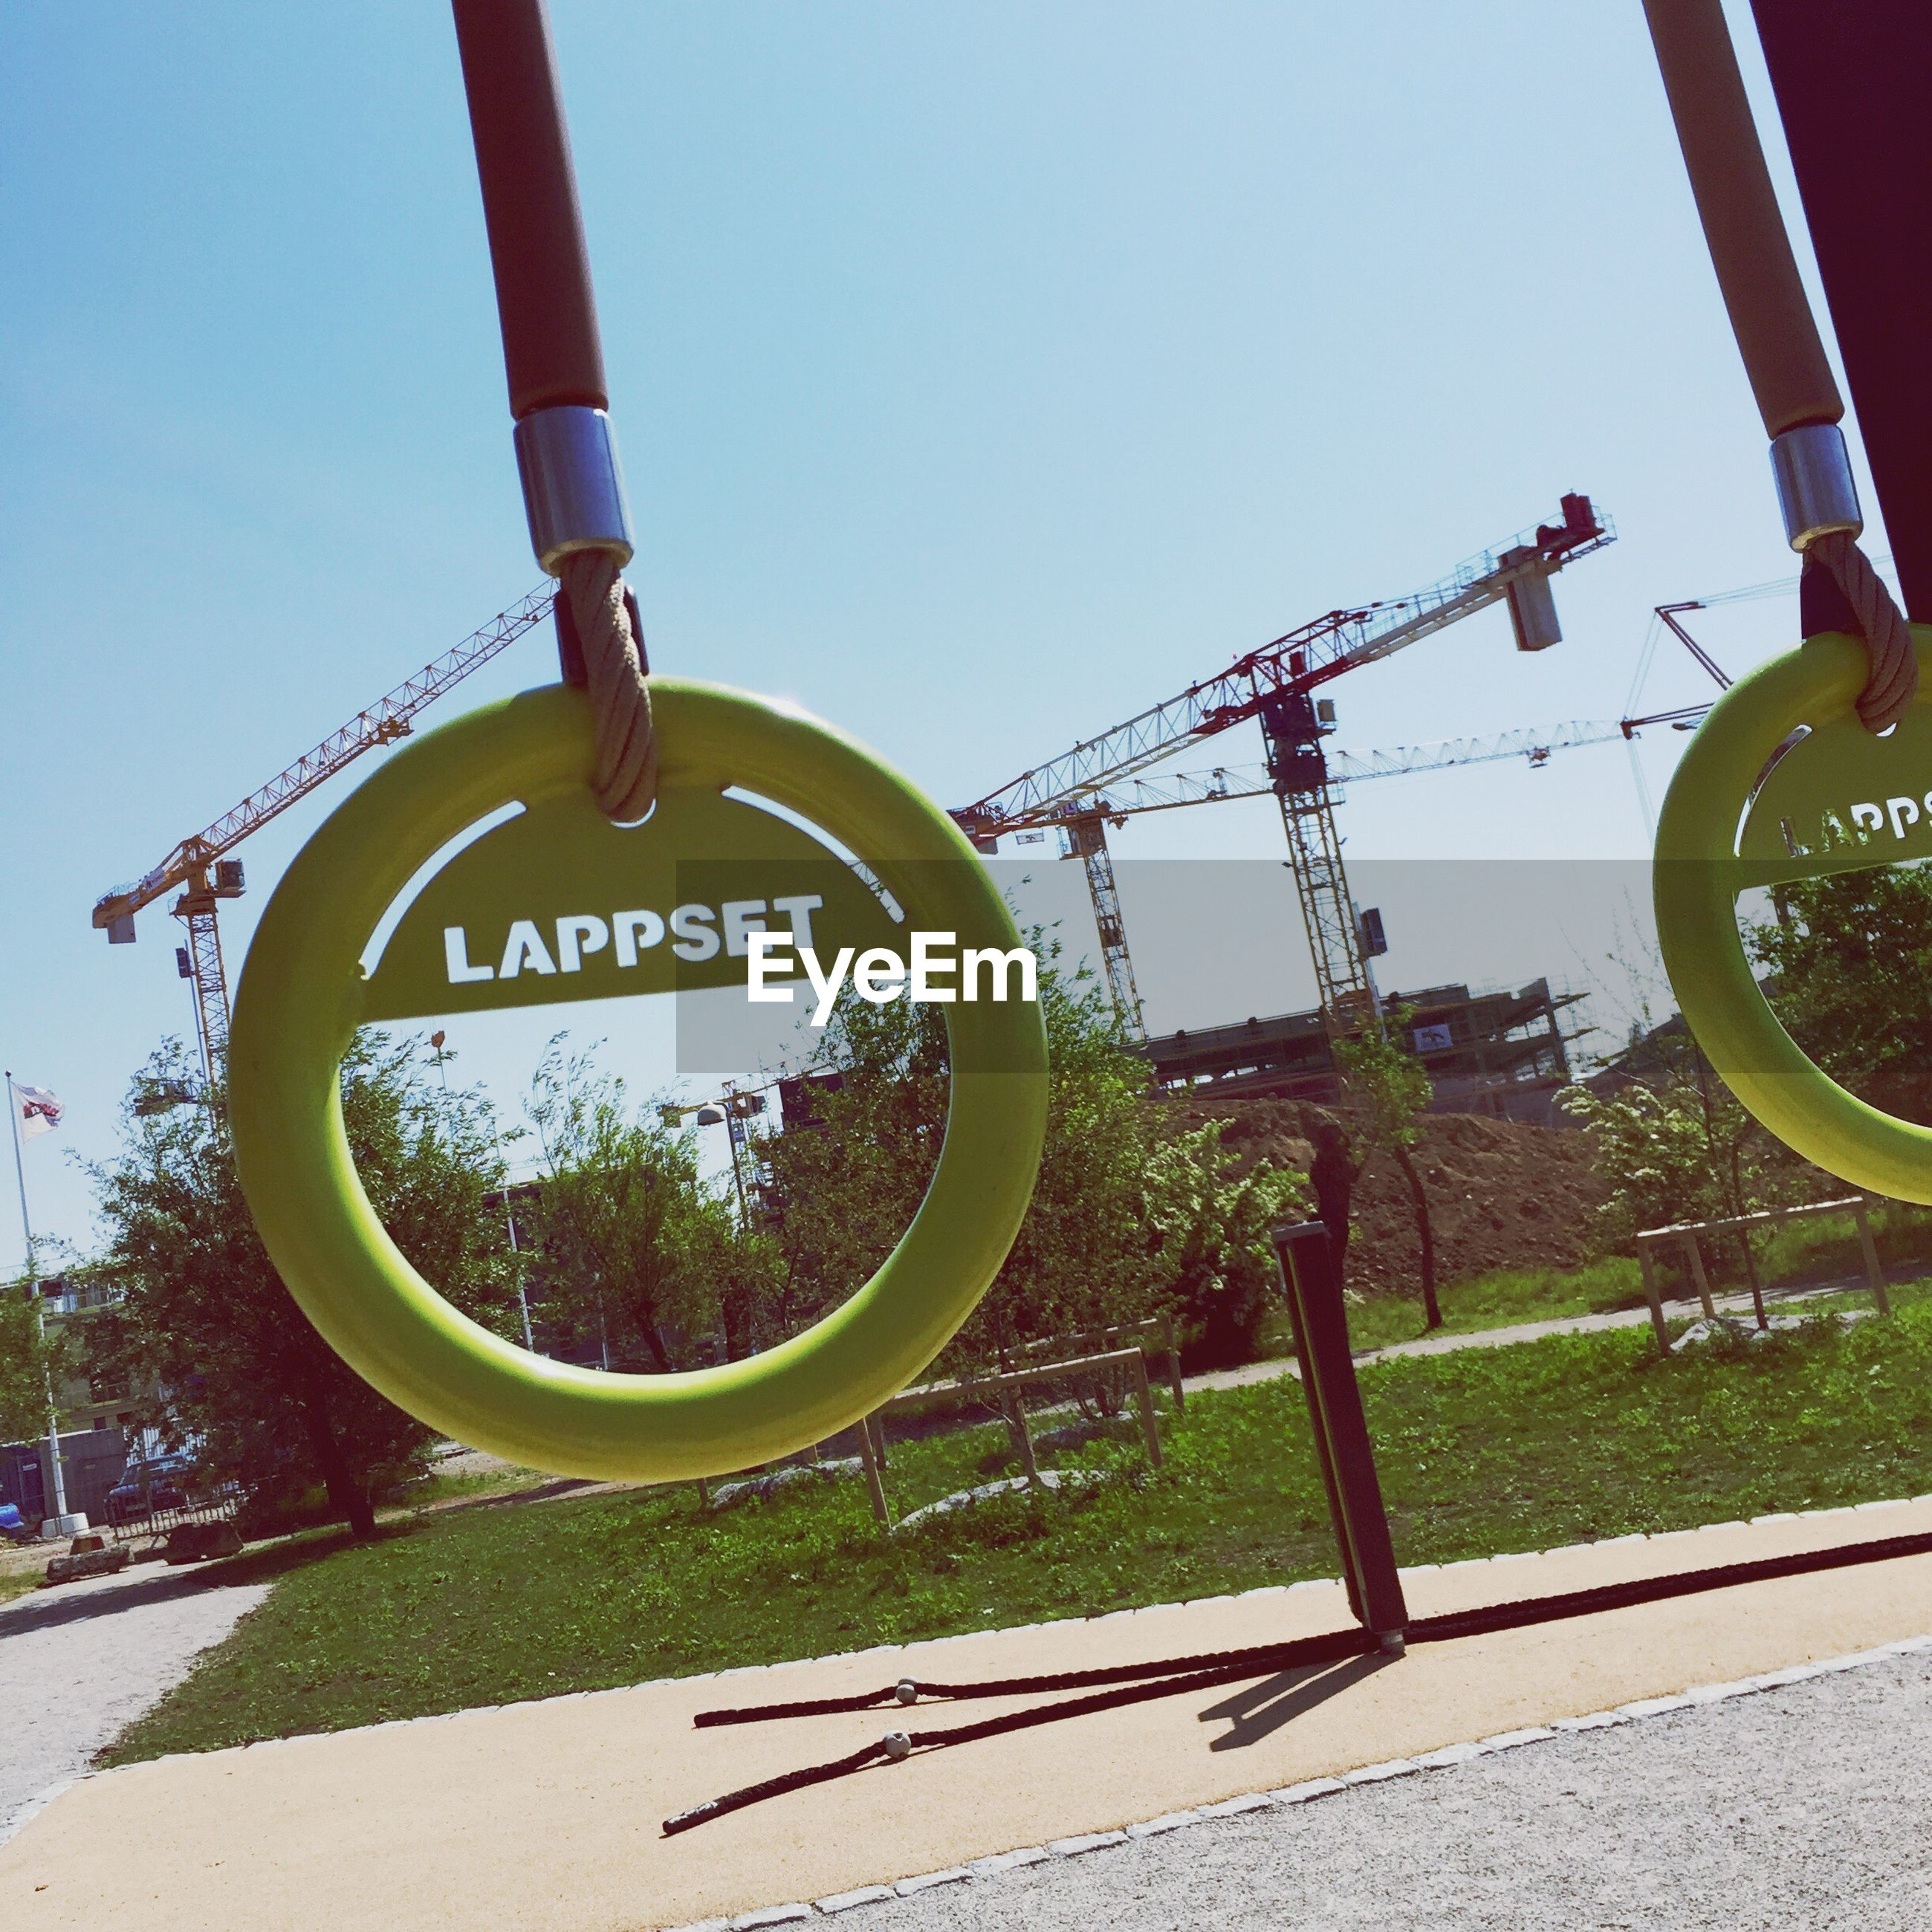 Close-up of text on gymnastic rings at park against crane